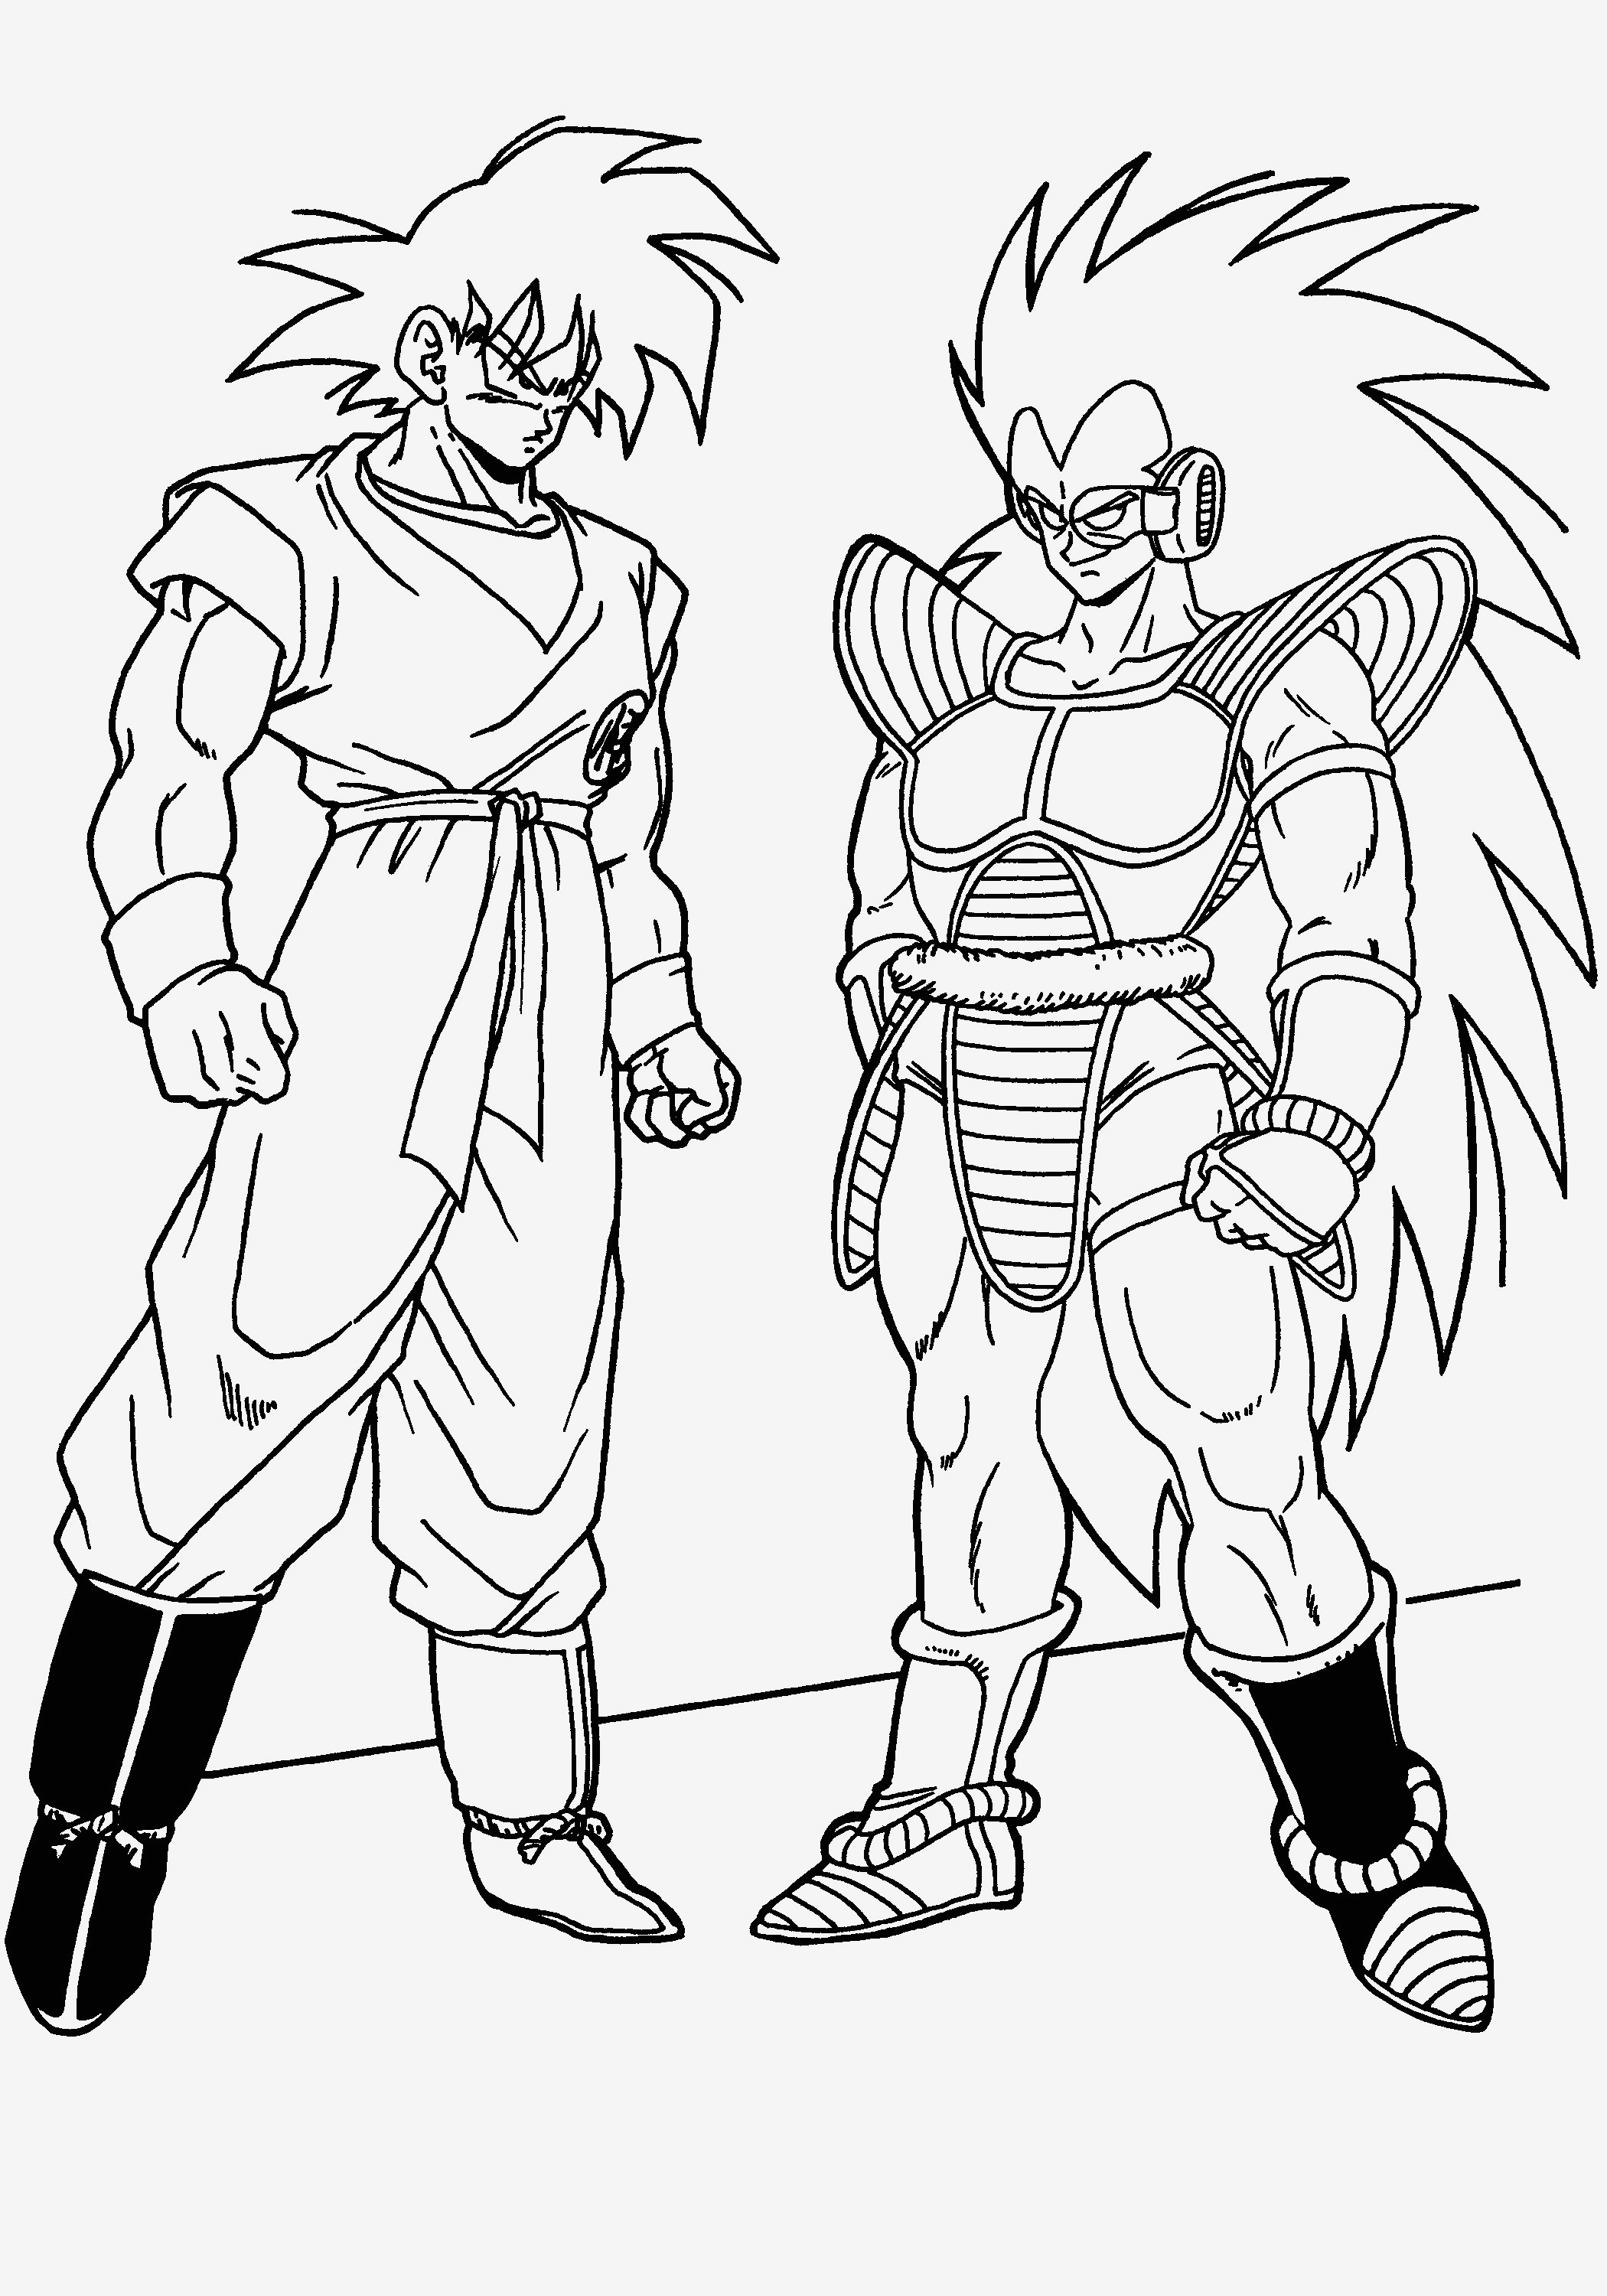 photograph relating to Dragon Ball Z Coloring Pages Printable identified as 23 Dragon Ball Z Coloring Web pages Gallery - Coloring Sheets